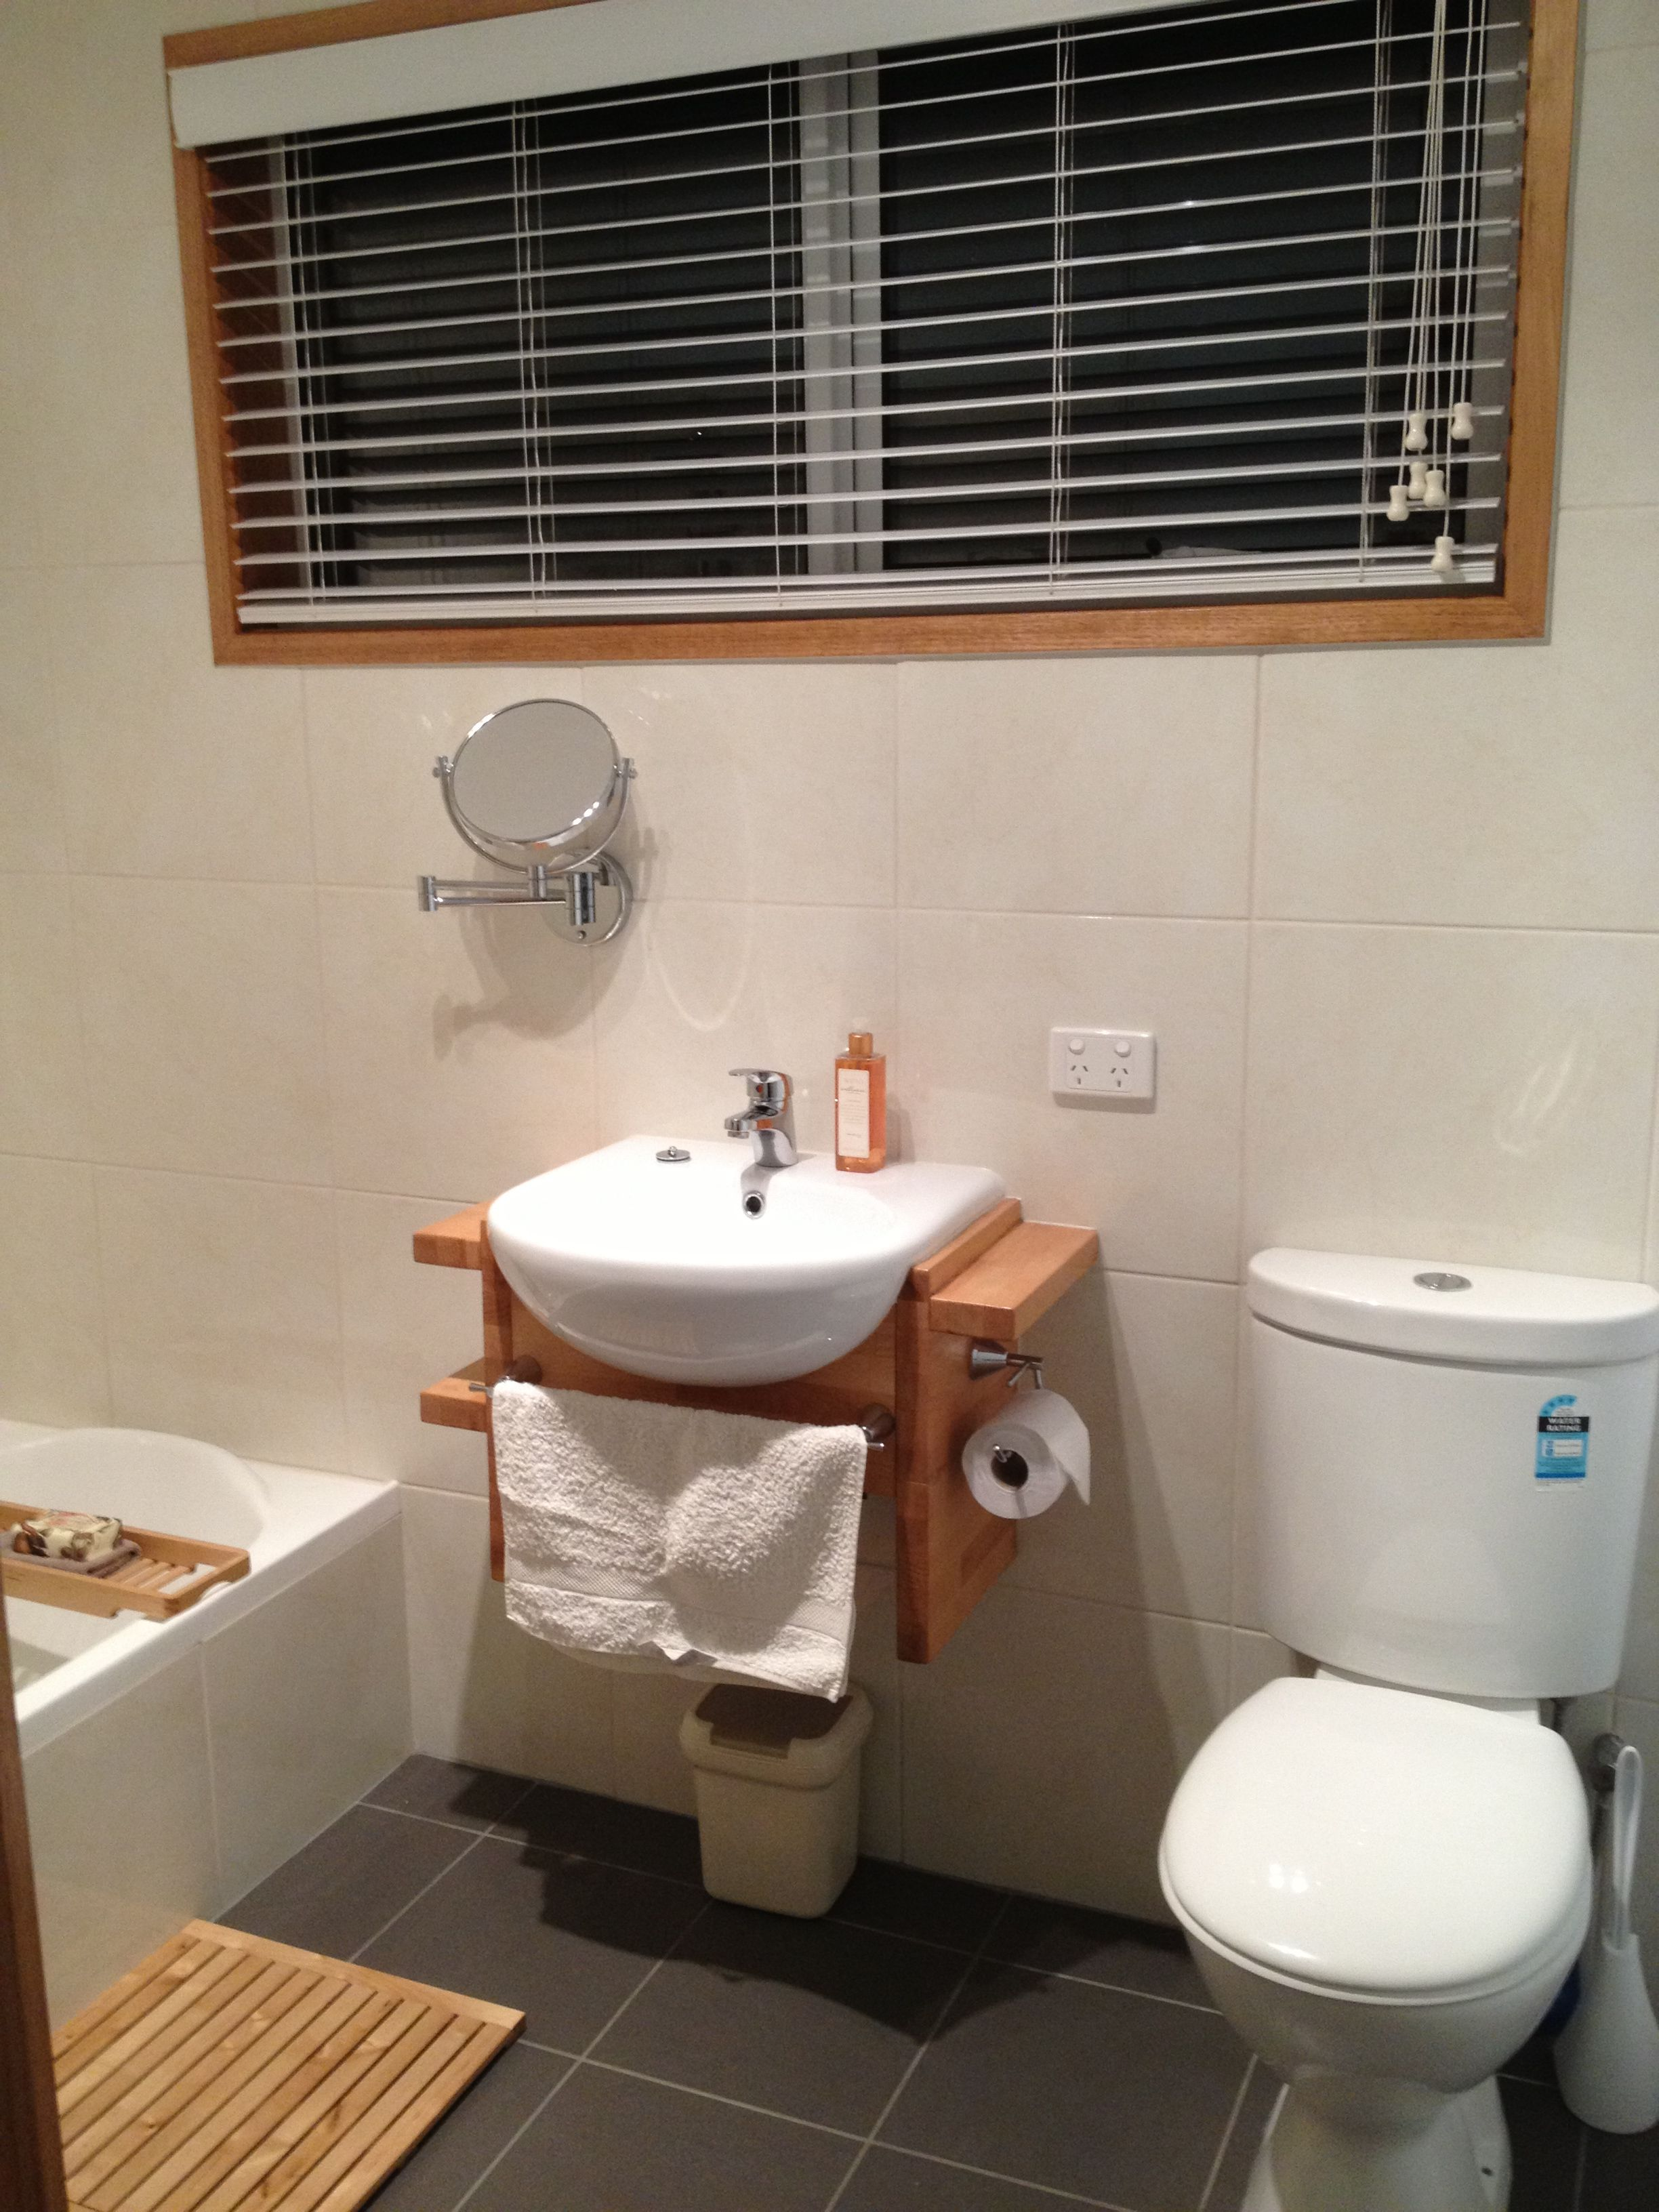 ensuite bathroom renovation melbourne australia strip on bathroom renovation ideas melbourne id=75581